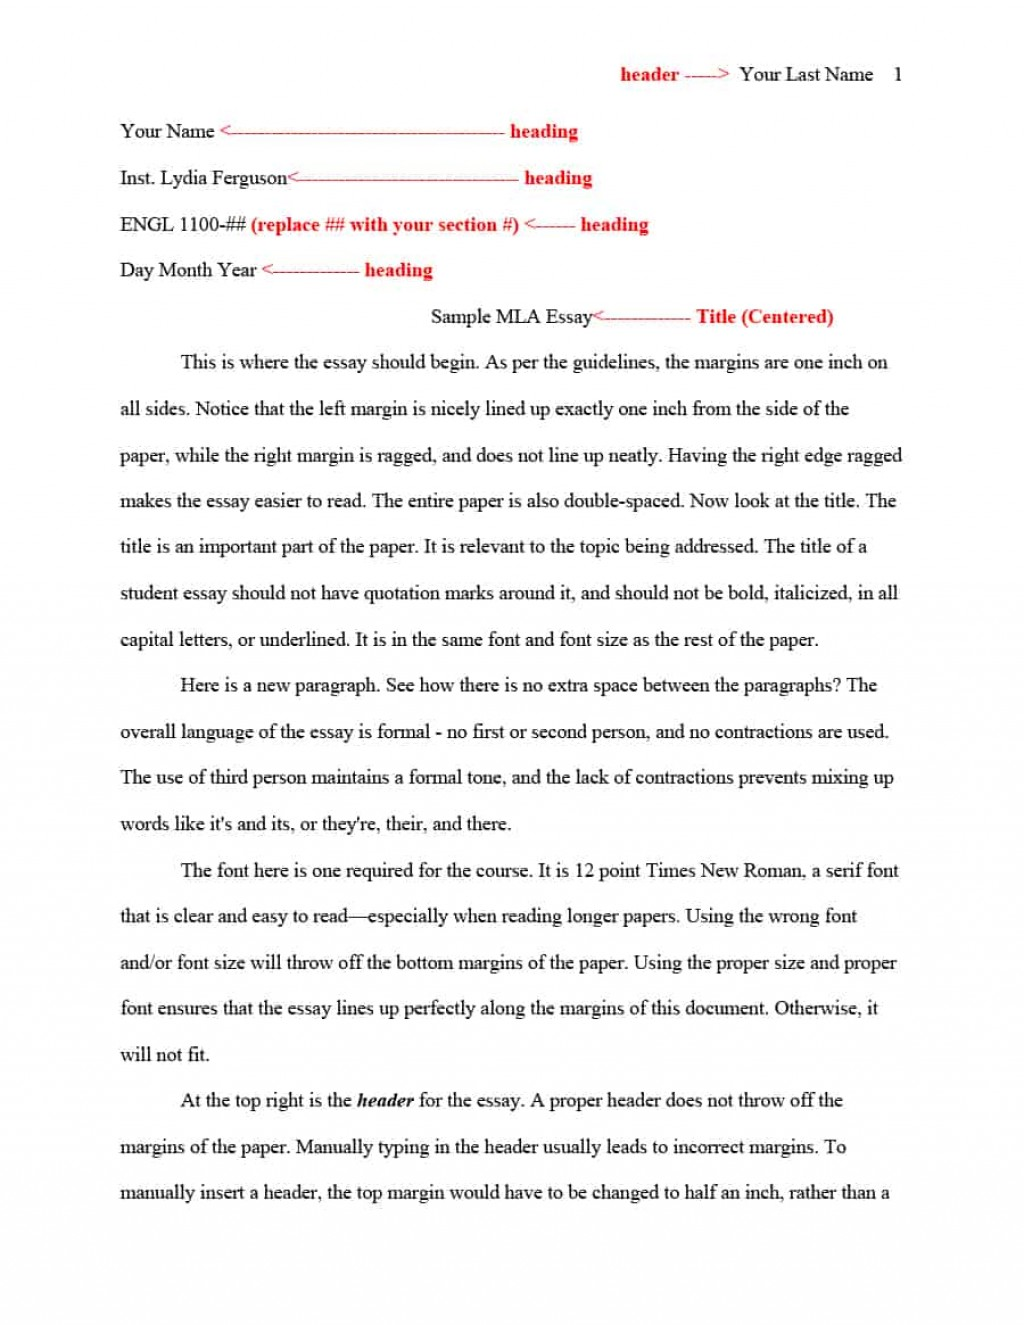 011 Mla Format Template Essay Example Magnificent Essays Persuasive Outline 2017 Large